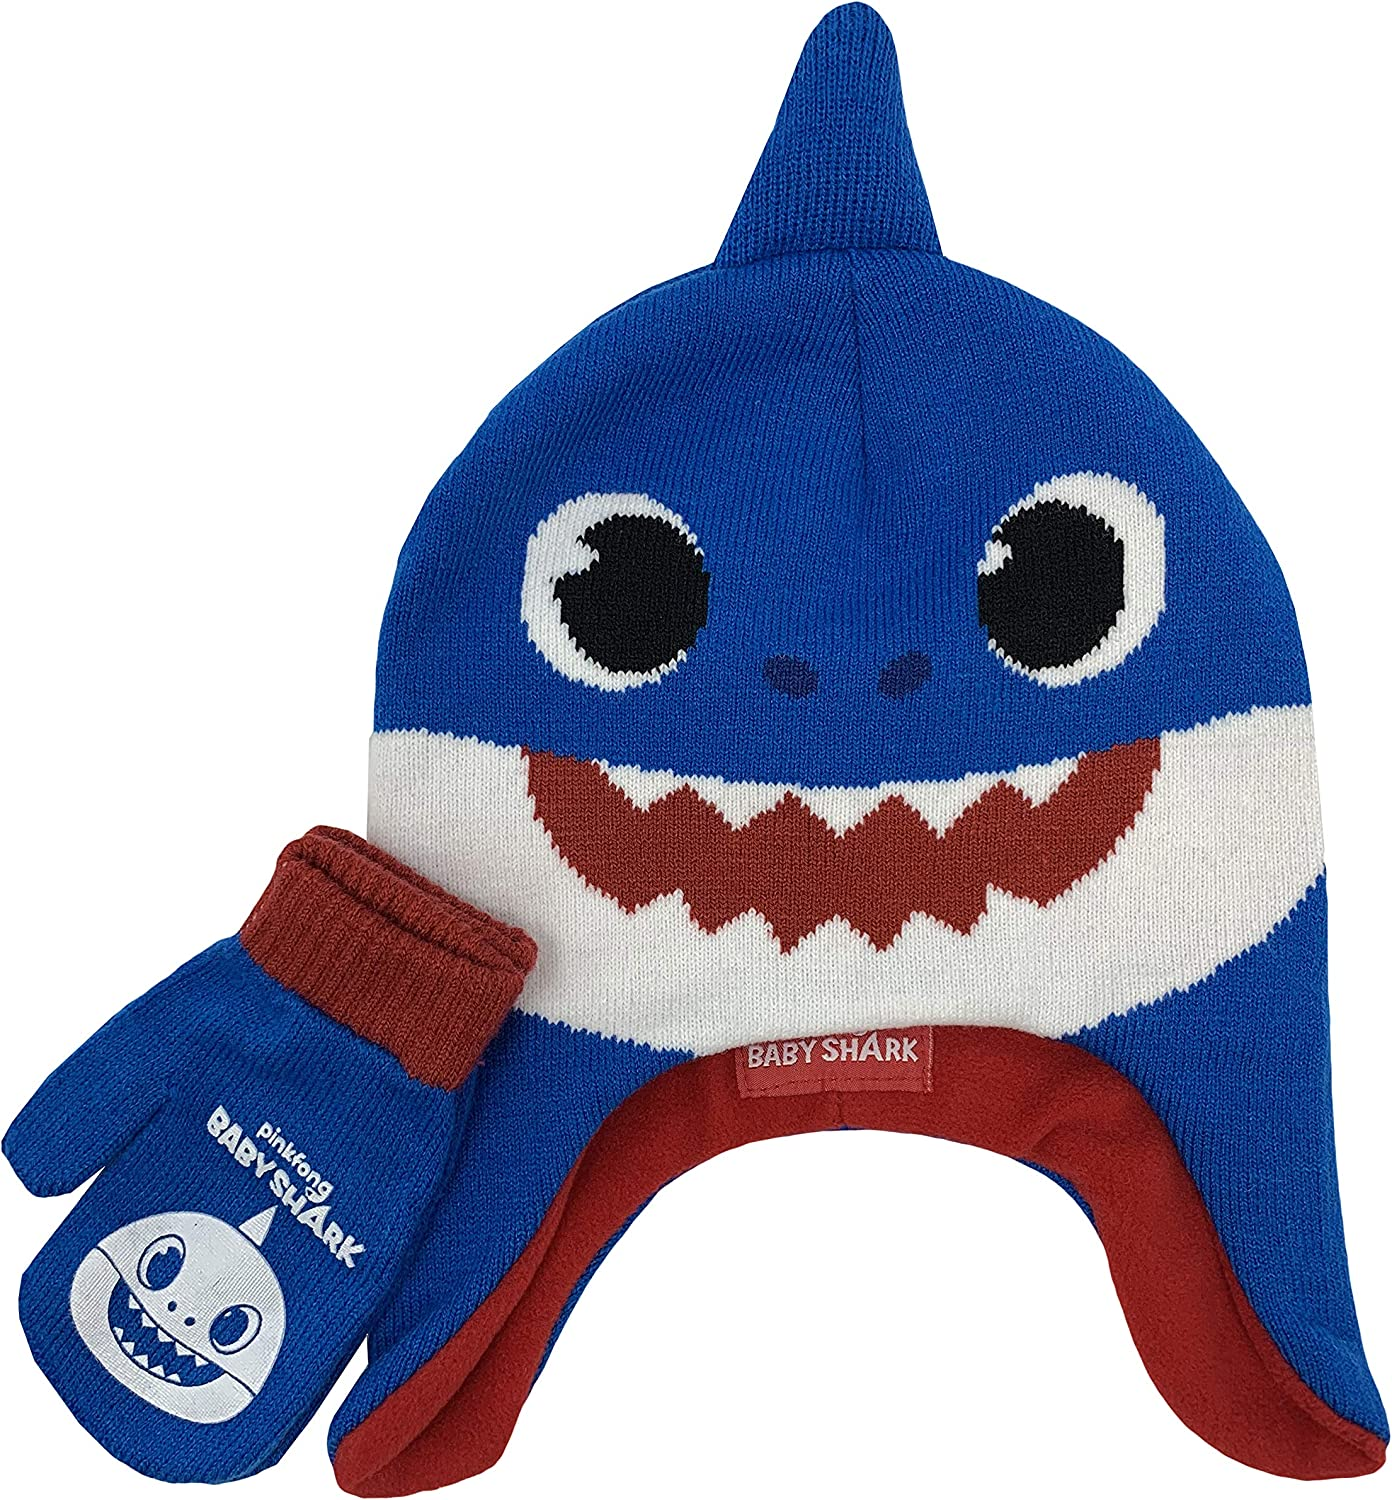 Baby Shark Winter Hat and Glove Set, Ages 2-5 Blue